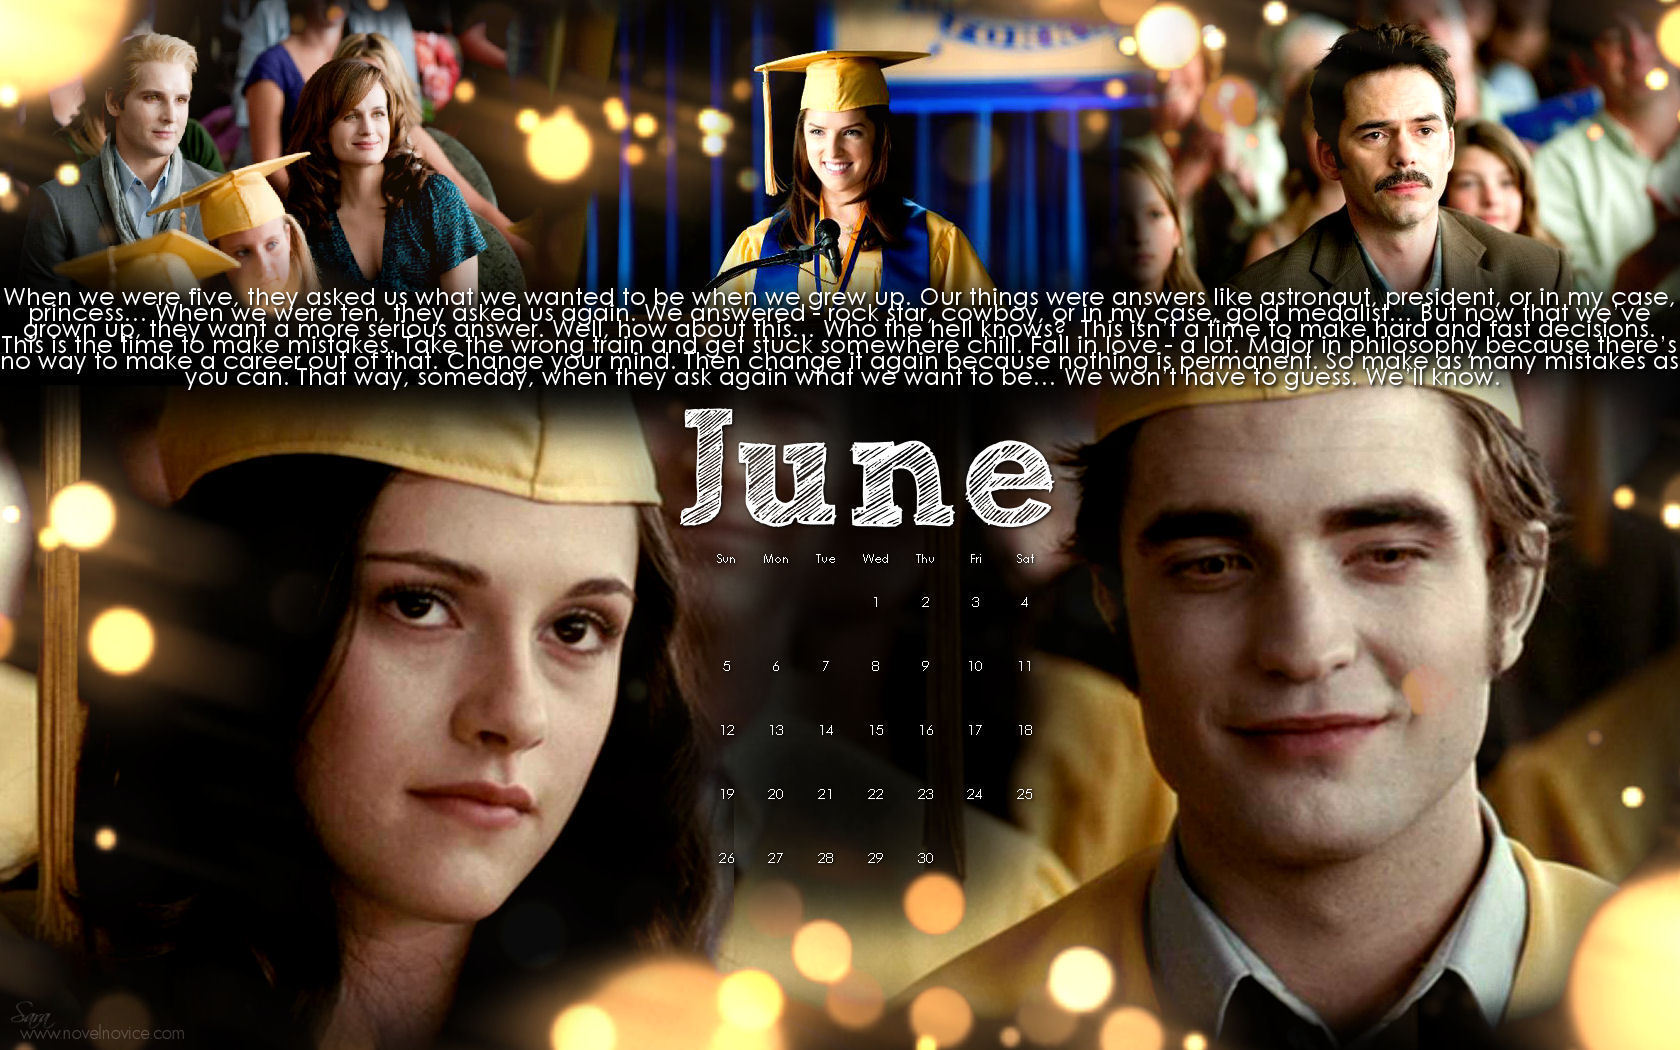 The Twilight Saga 2011 Desktop Wallpaper Calendars - twilight-series wallpaper